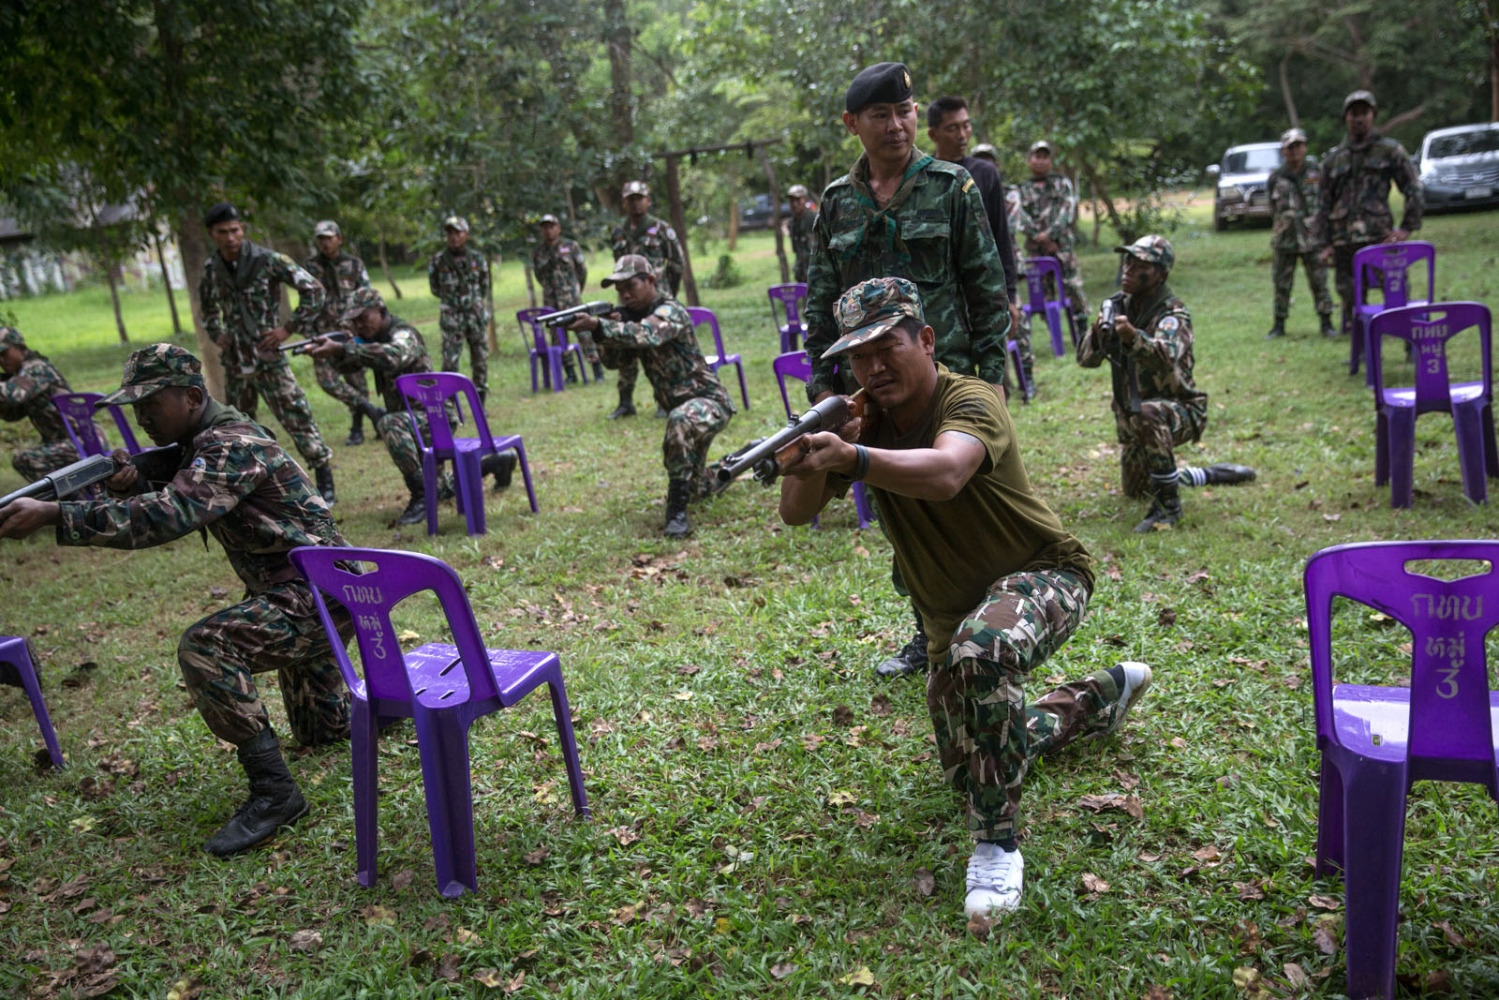 New forest ranger recruits have weapons training as part of a week long course at a remote ranger station in eastern Thailand. Ta Praya National Park, Sa Kaew Province - September 2018